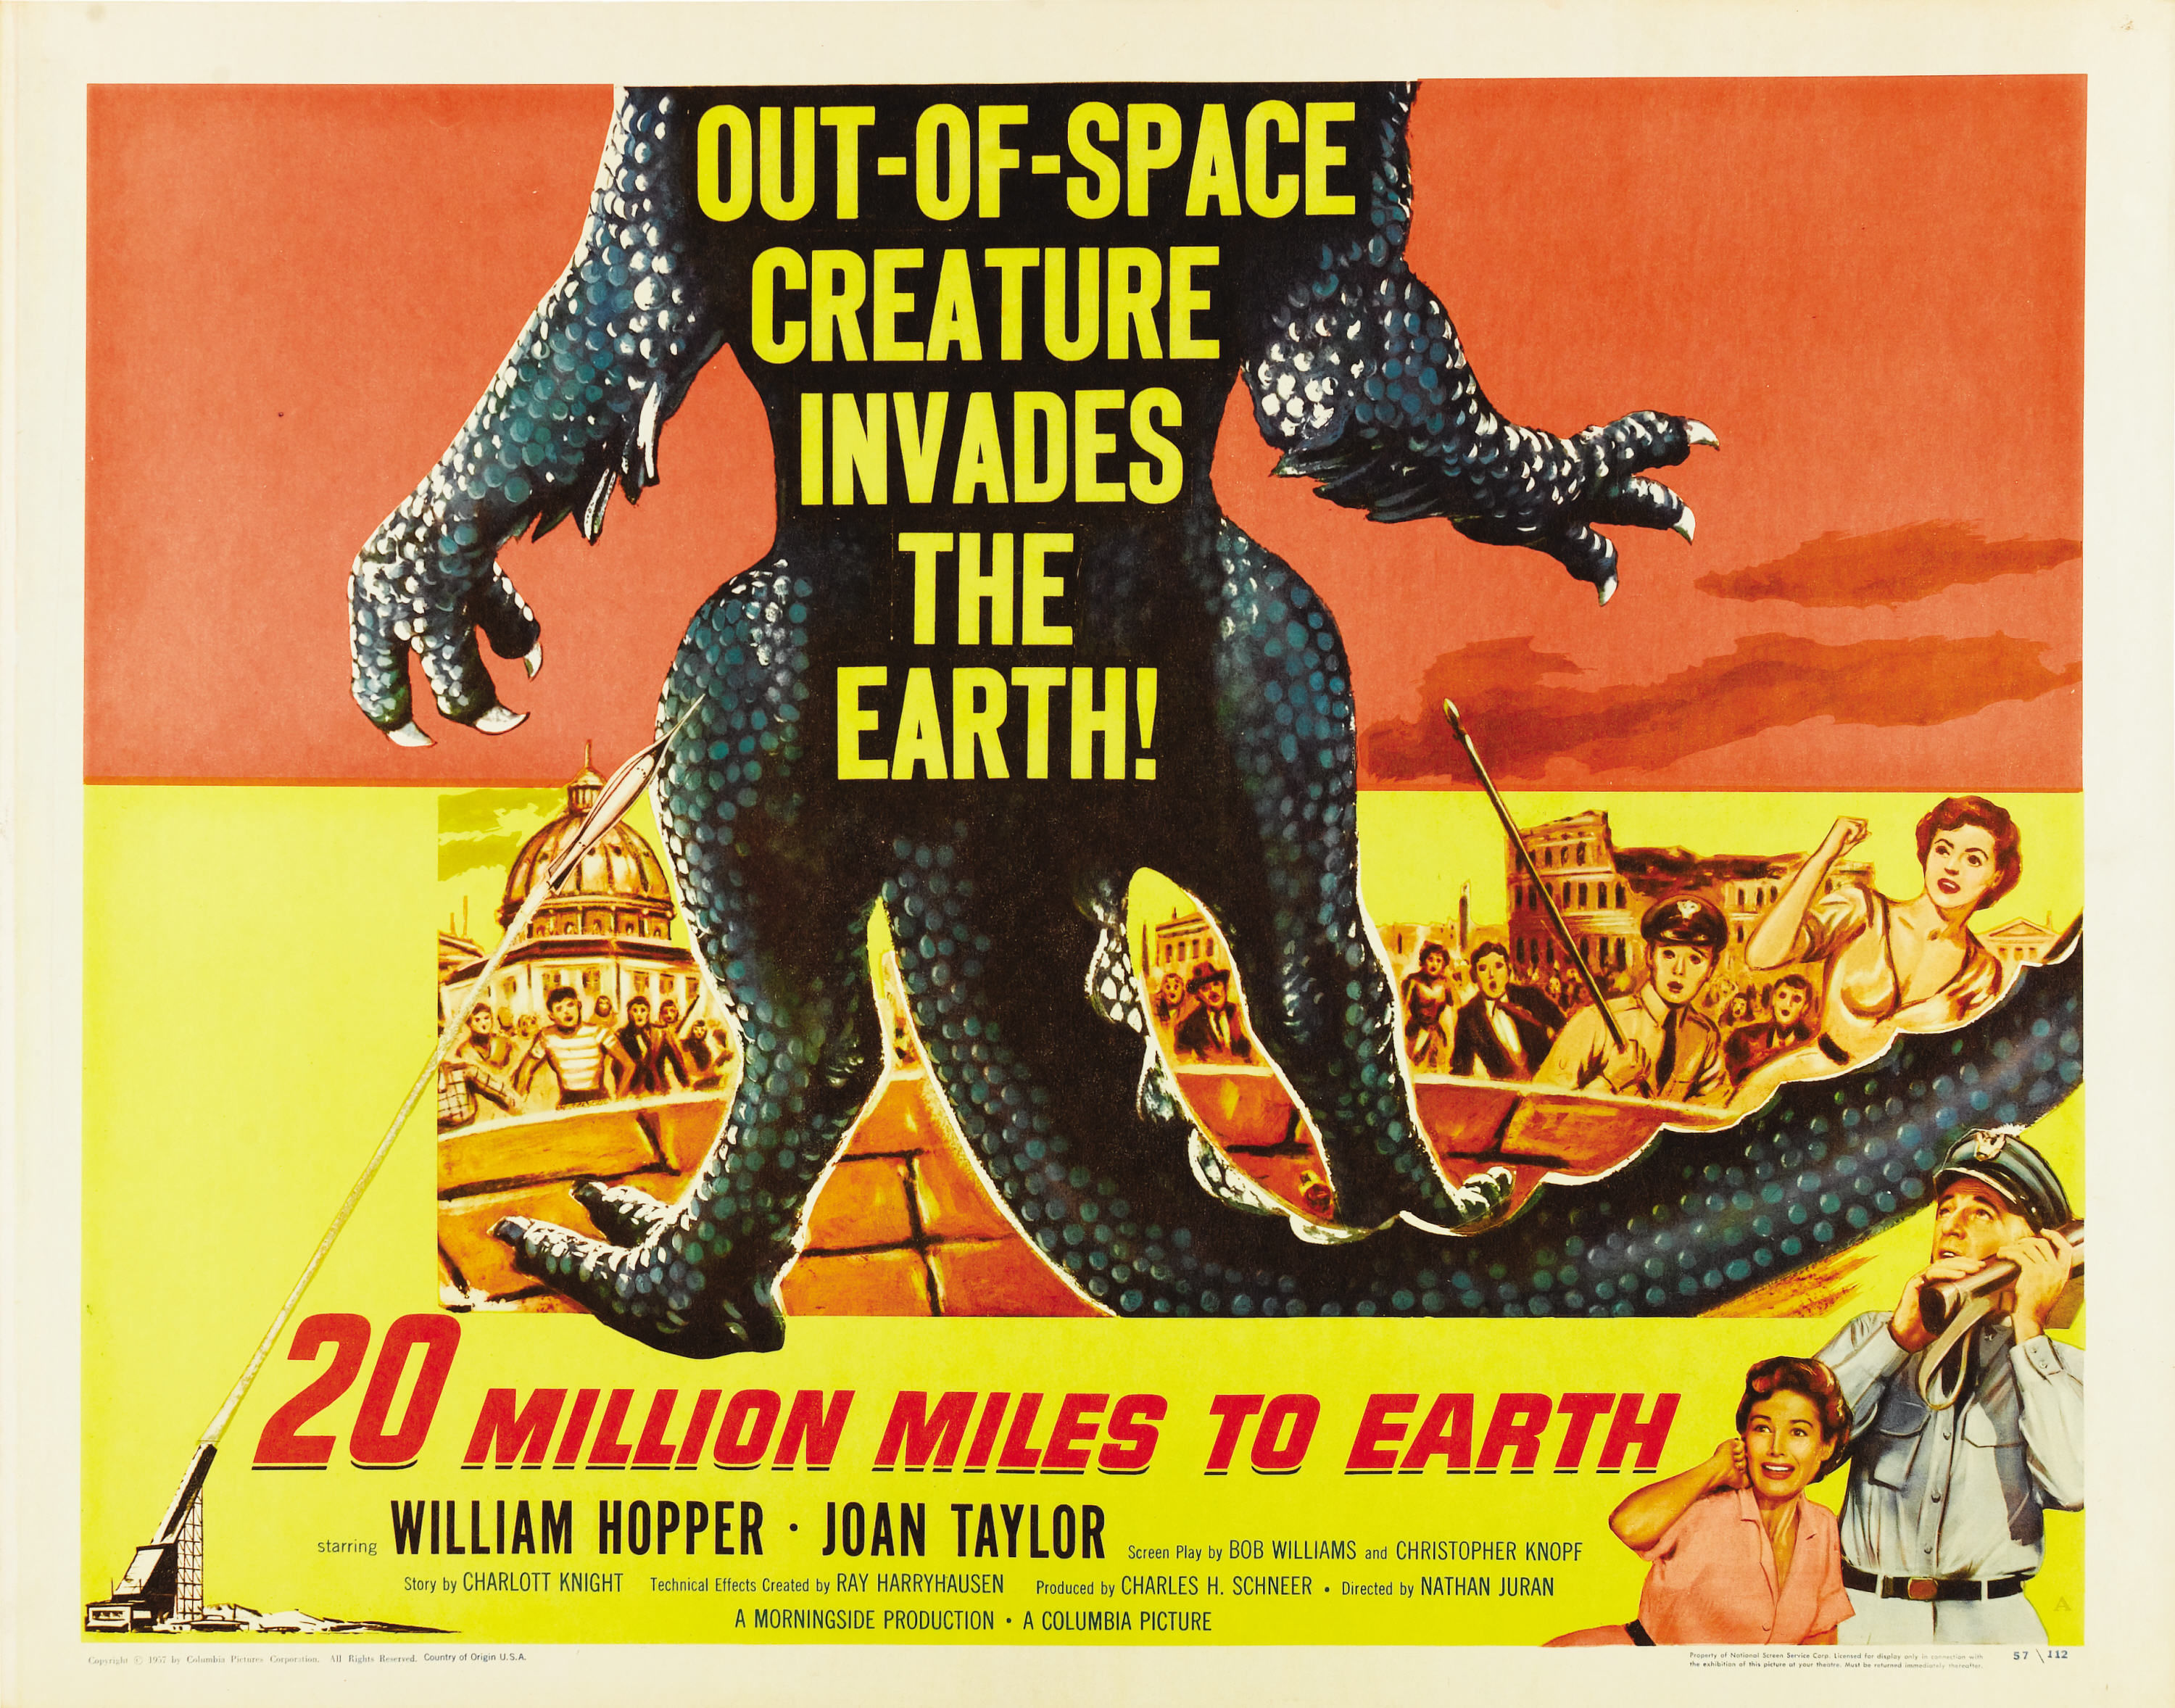 20_million_miles_to_earth_poster_04.jpg